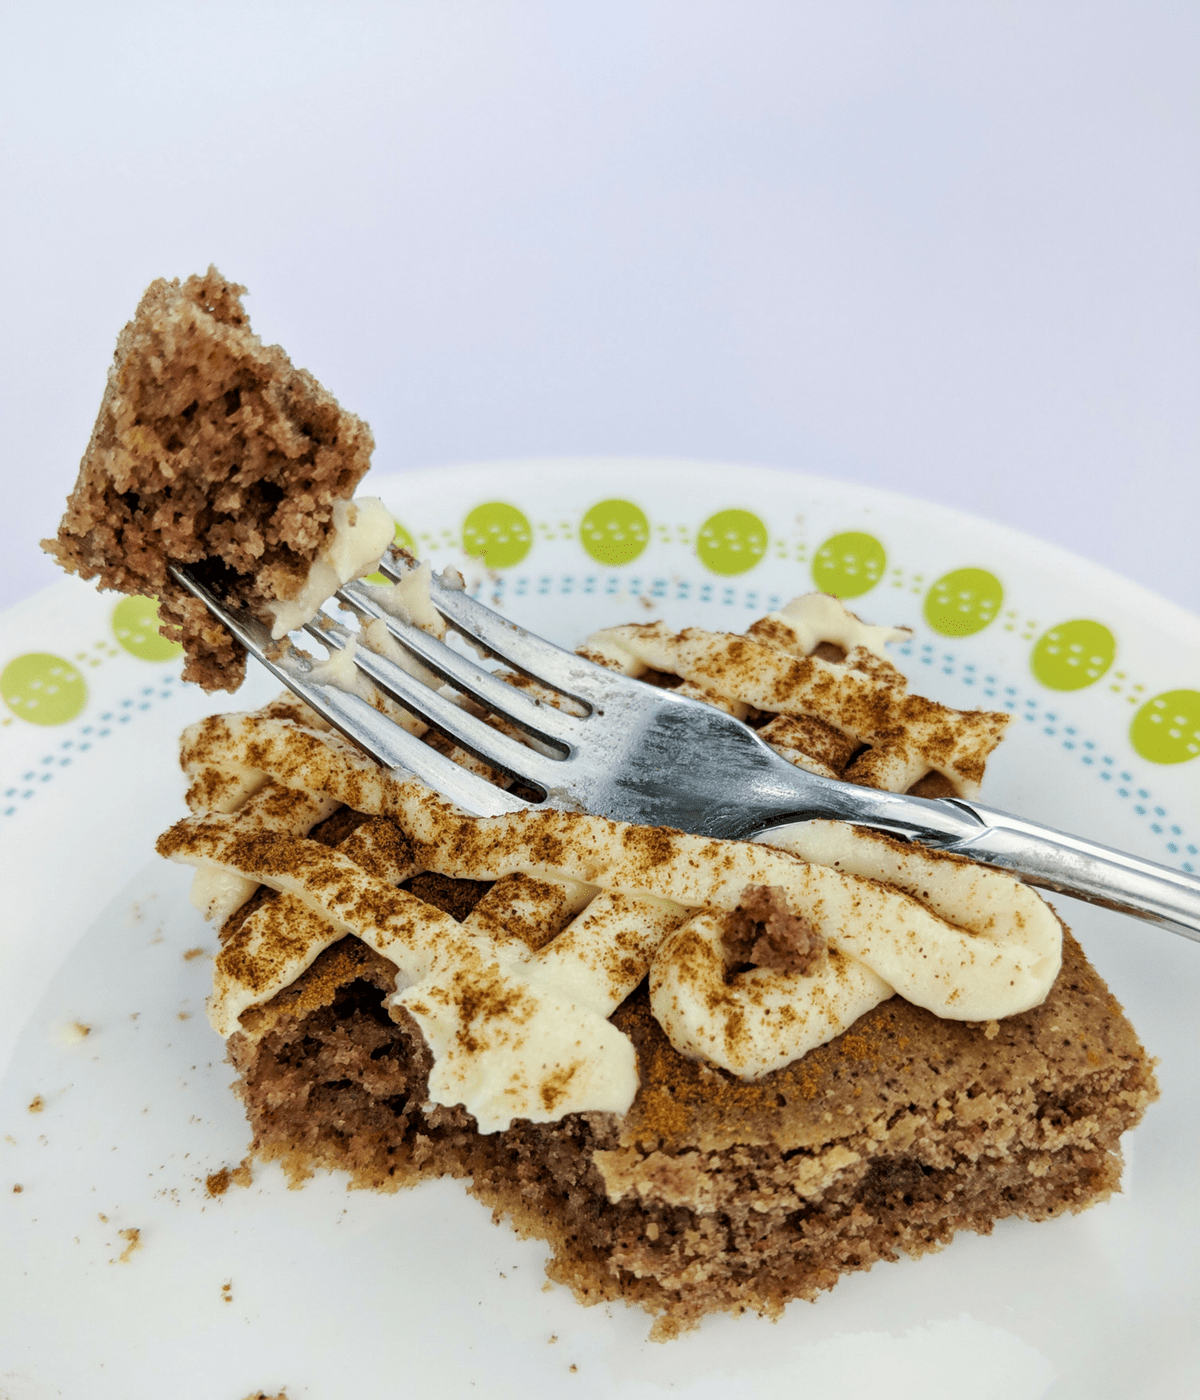 Make a lectin free, gluten free, Plant Paradox approved dessert for your holiday gathering with this sheet pan ginger cake with cinnamon cream cheese frosting.